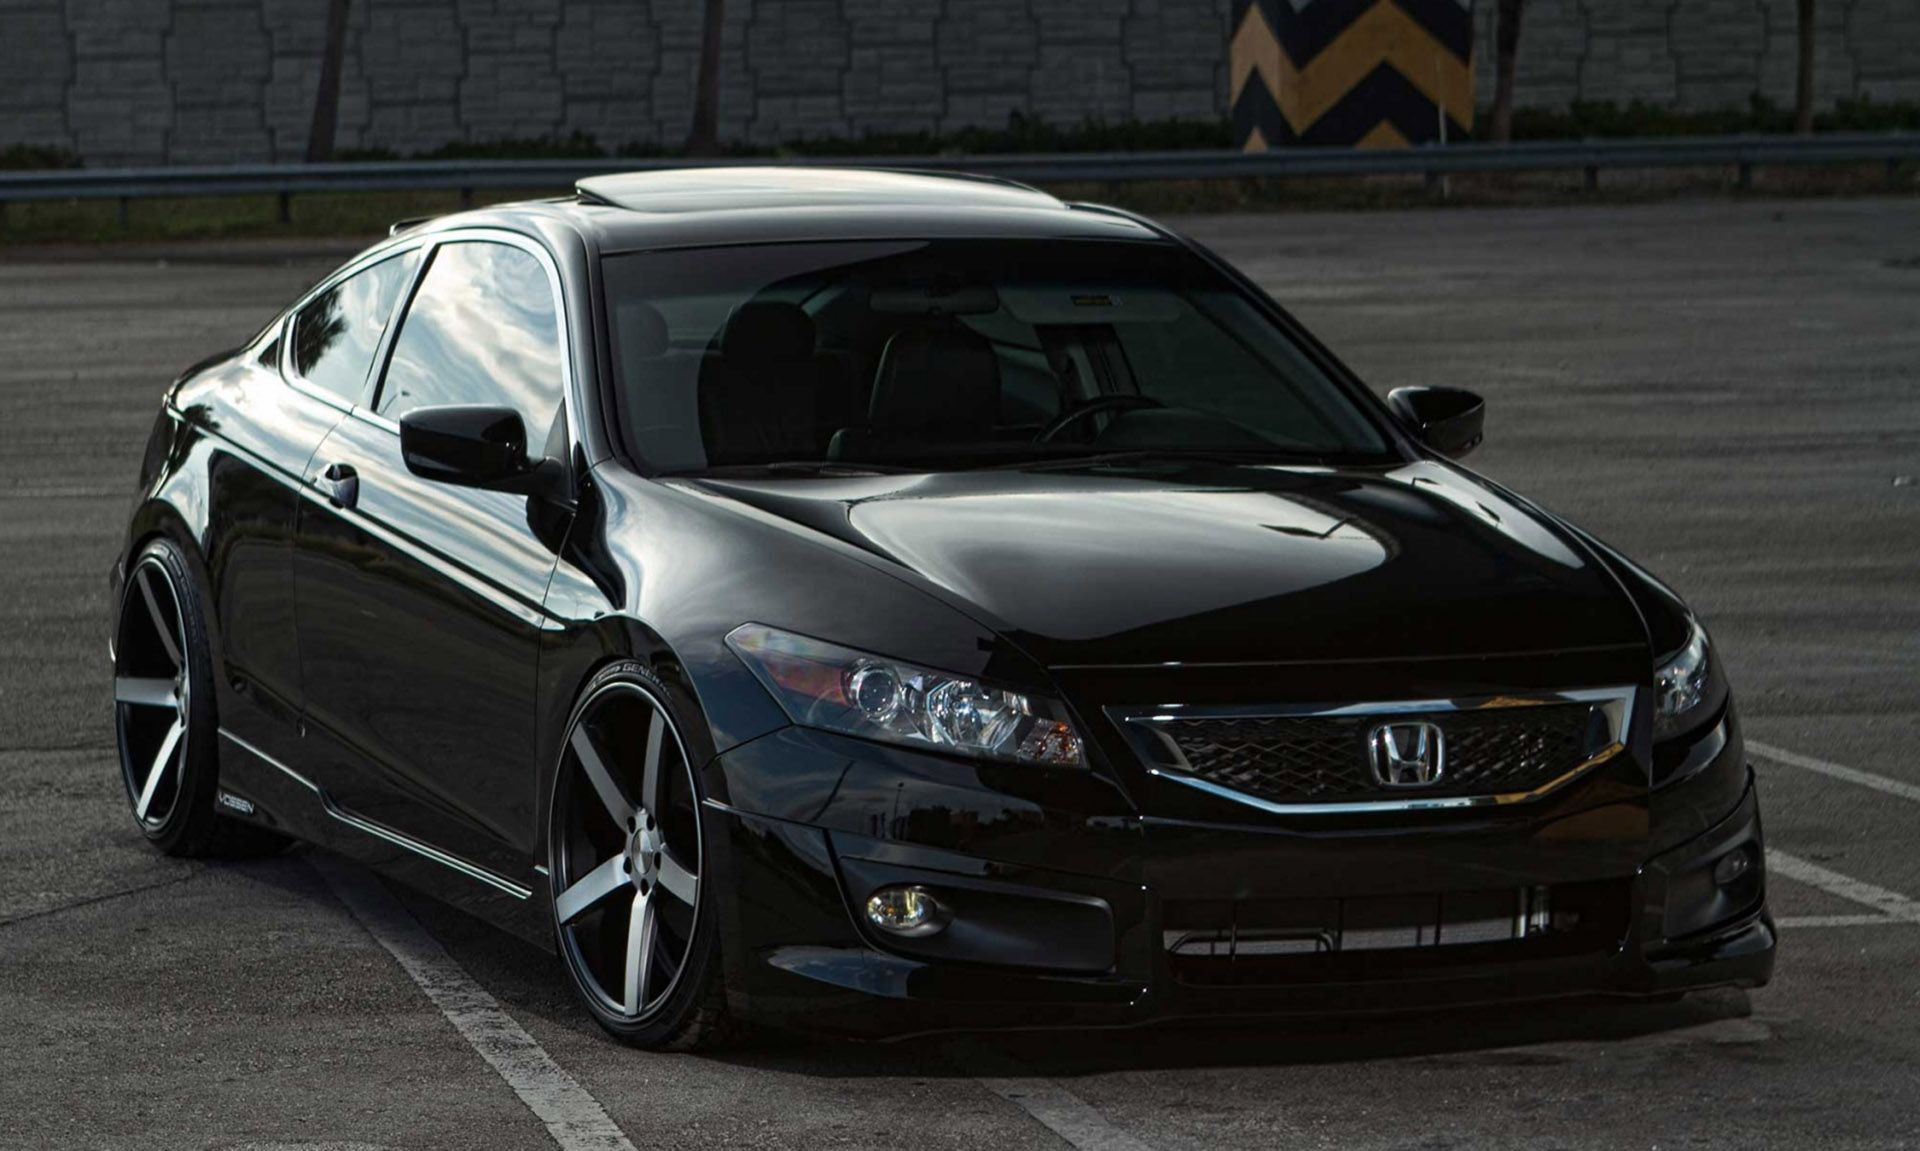 Grey Accord Coupe Black Honda Accord Custom Rims Car Picture HD - Accord vehicle